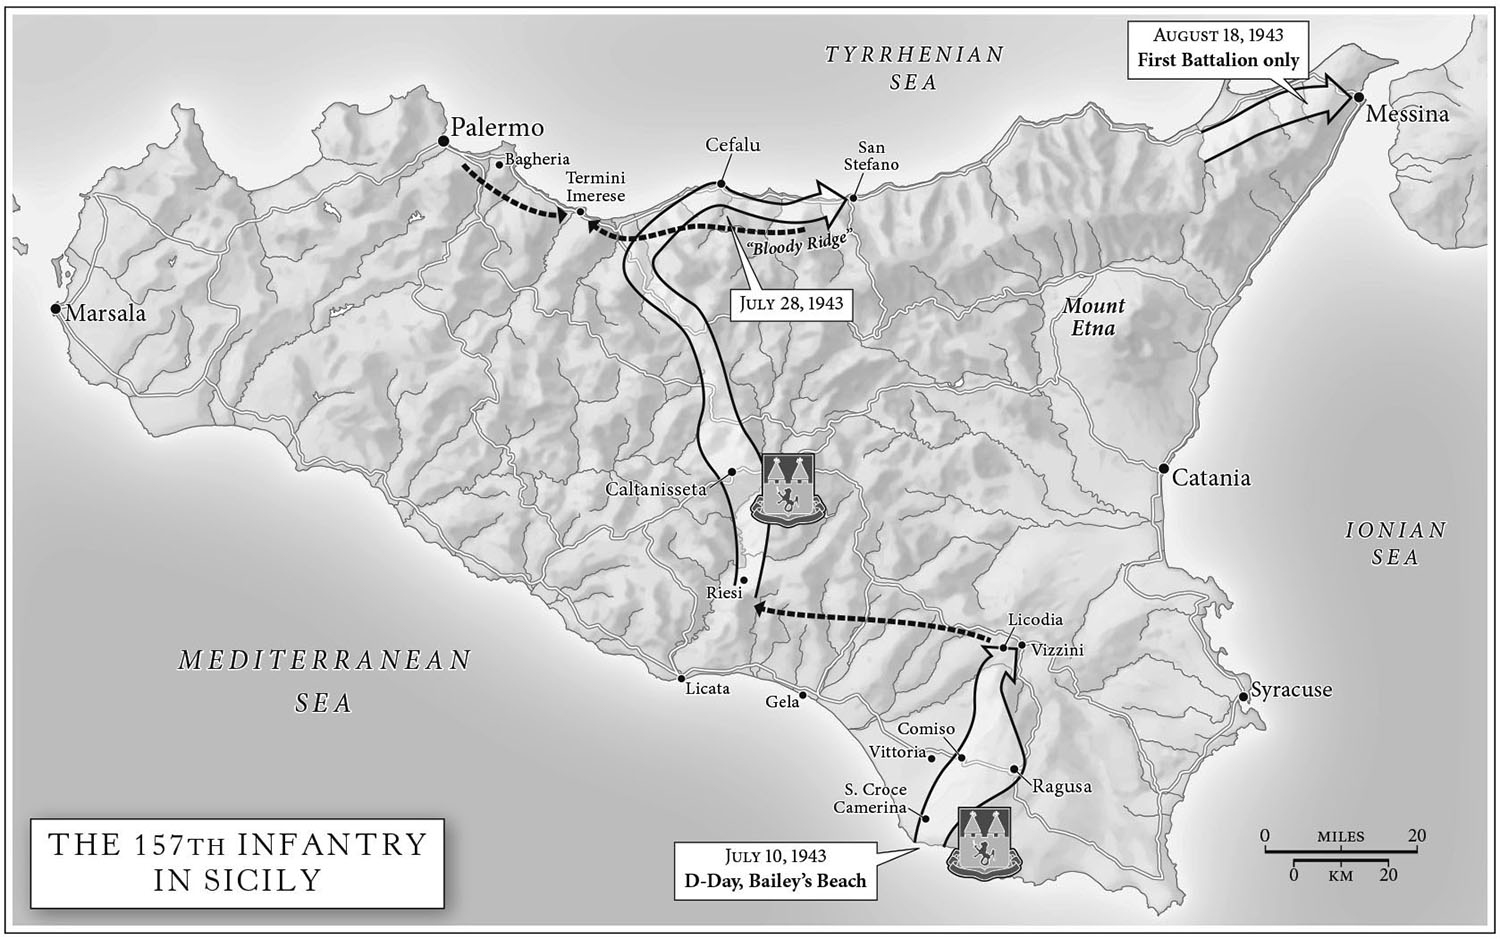 One of thirteen maps for    The Liberator, by Alex Kershaw   (Crown, 2012). Map copyright © Alex Kershaw.  Liberator  describes the World War II route of the 157th Infantry from Sicily, to Salerno, Anzio, and Rome, then up the Rhône Saone valley, through the Vosges, and finally into Bavaria and Dachau.